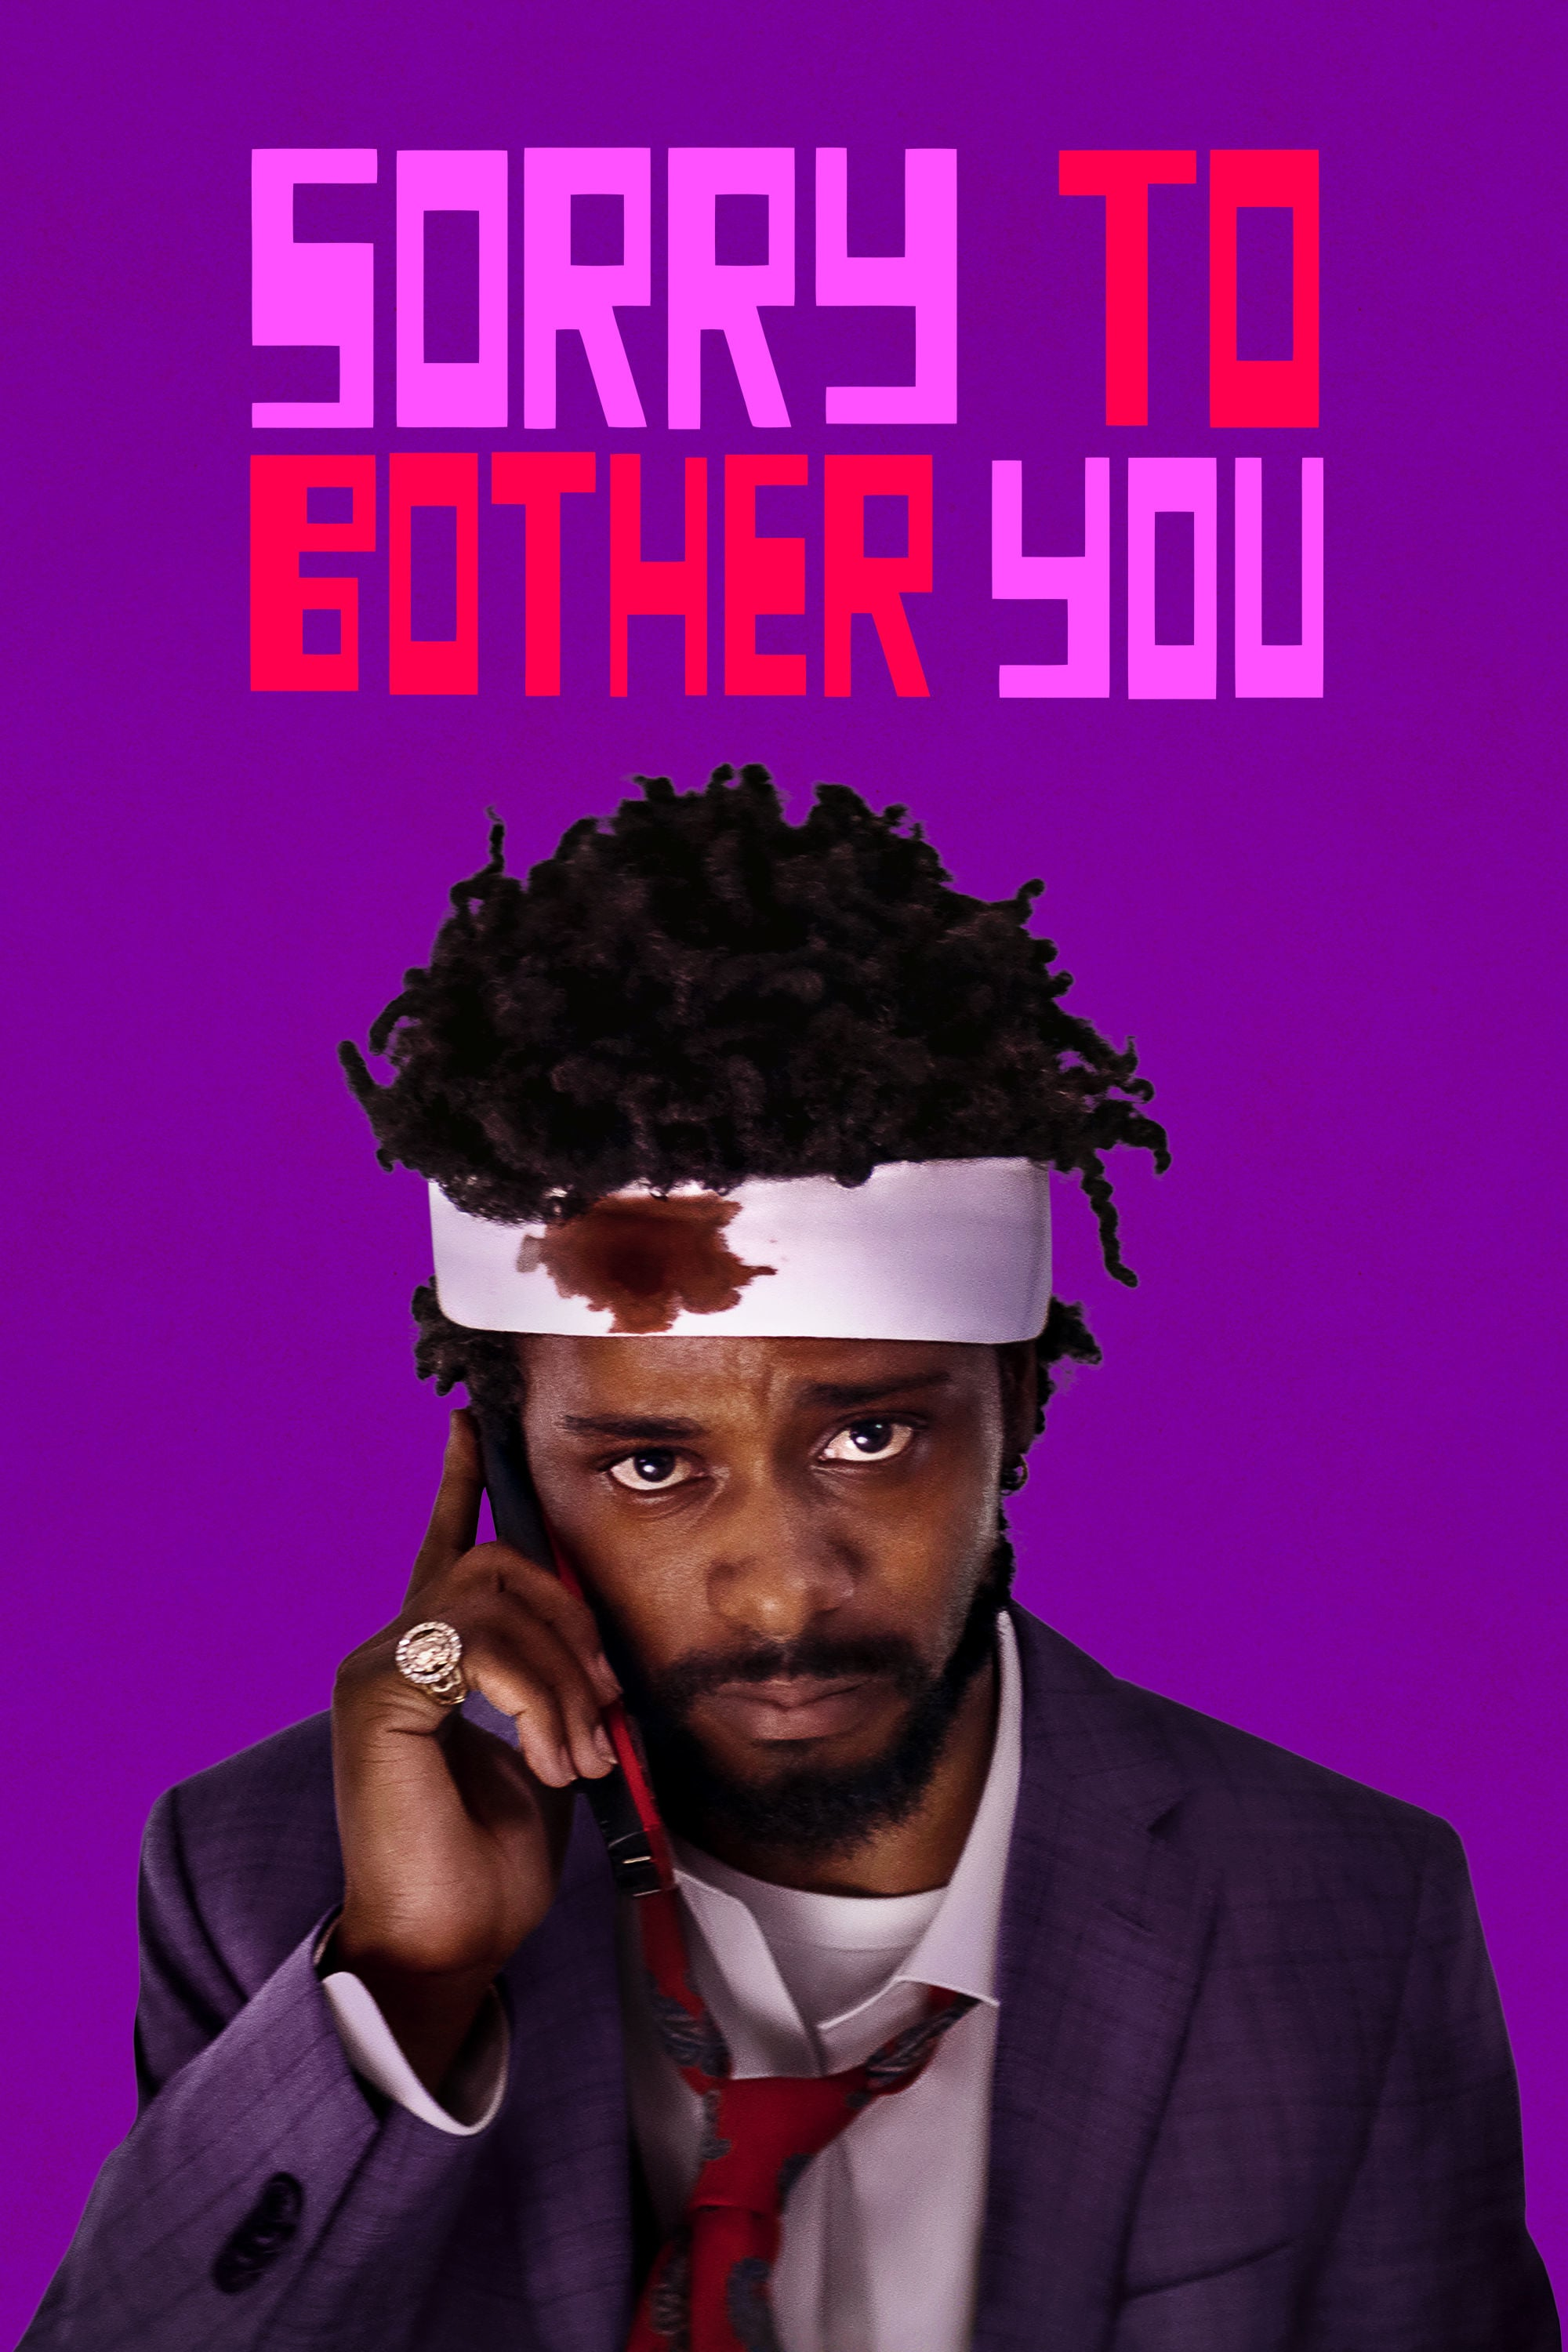 The film poster showing LaKeith Stanfield with a bandaged head.